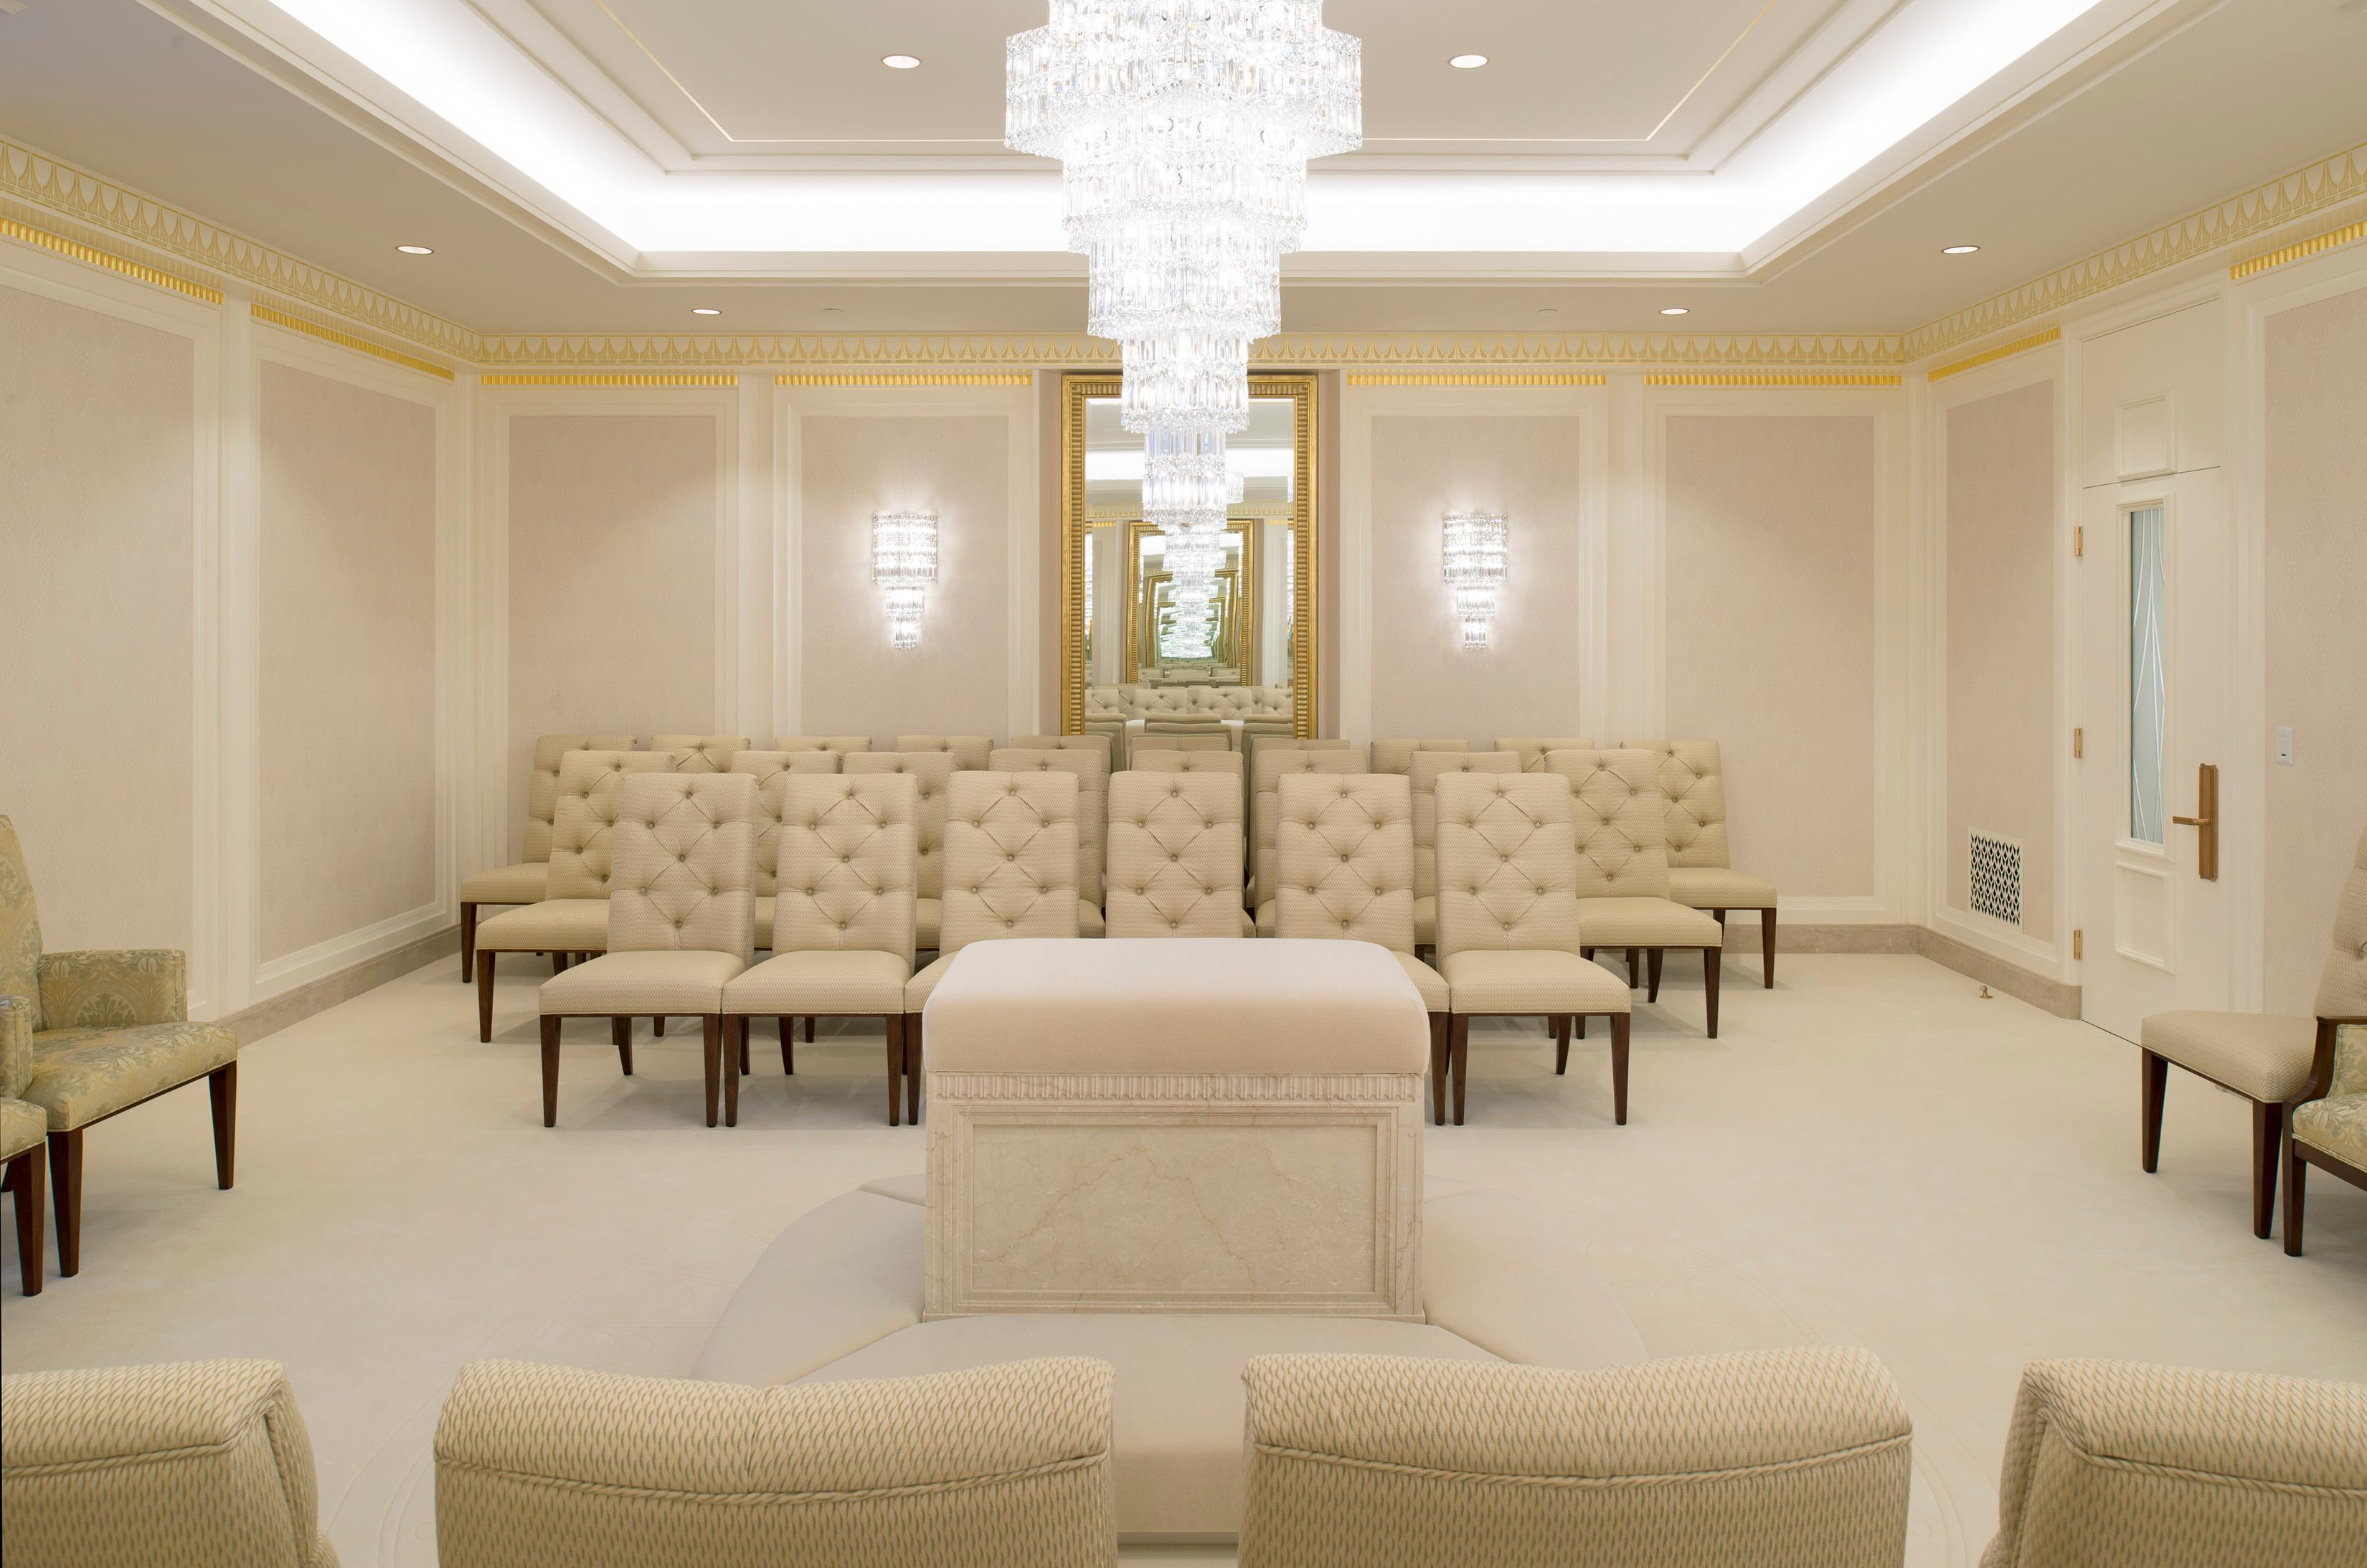 A sealing room in the Jordan River Utah Temple.{ }©2018 BY INTELLECTUAL RESERVE, INC. ALL RIGHTS RESERVED.